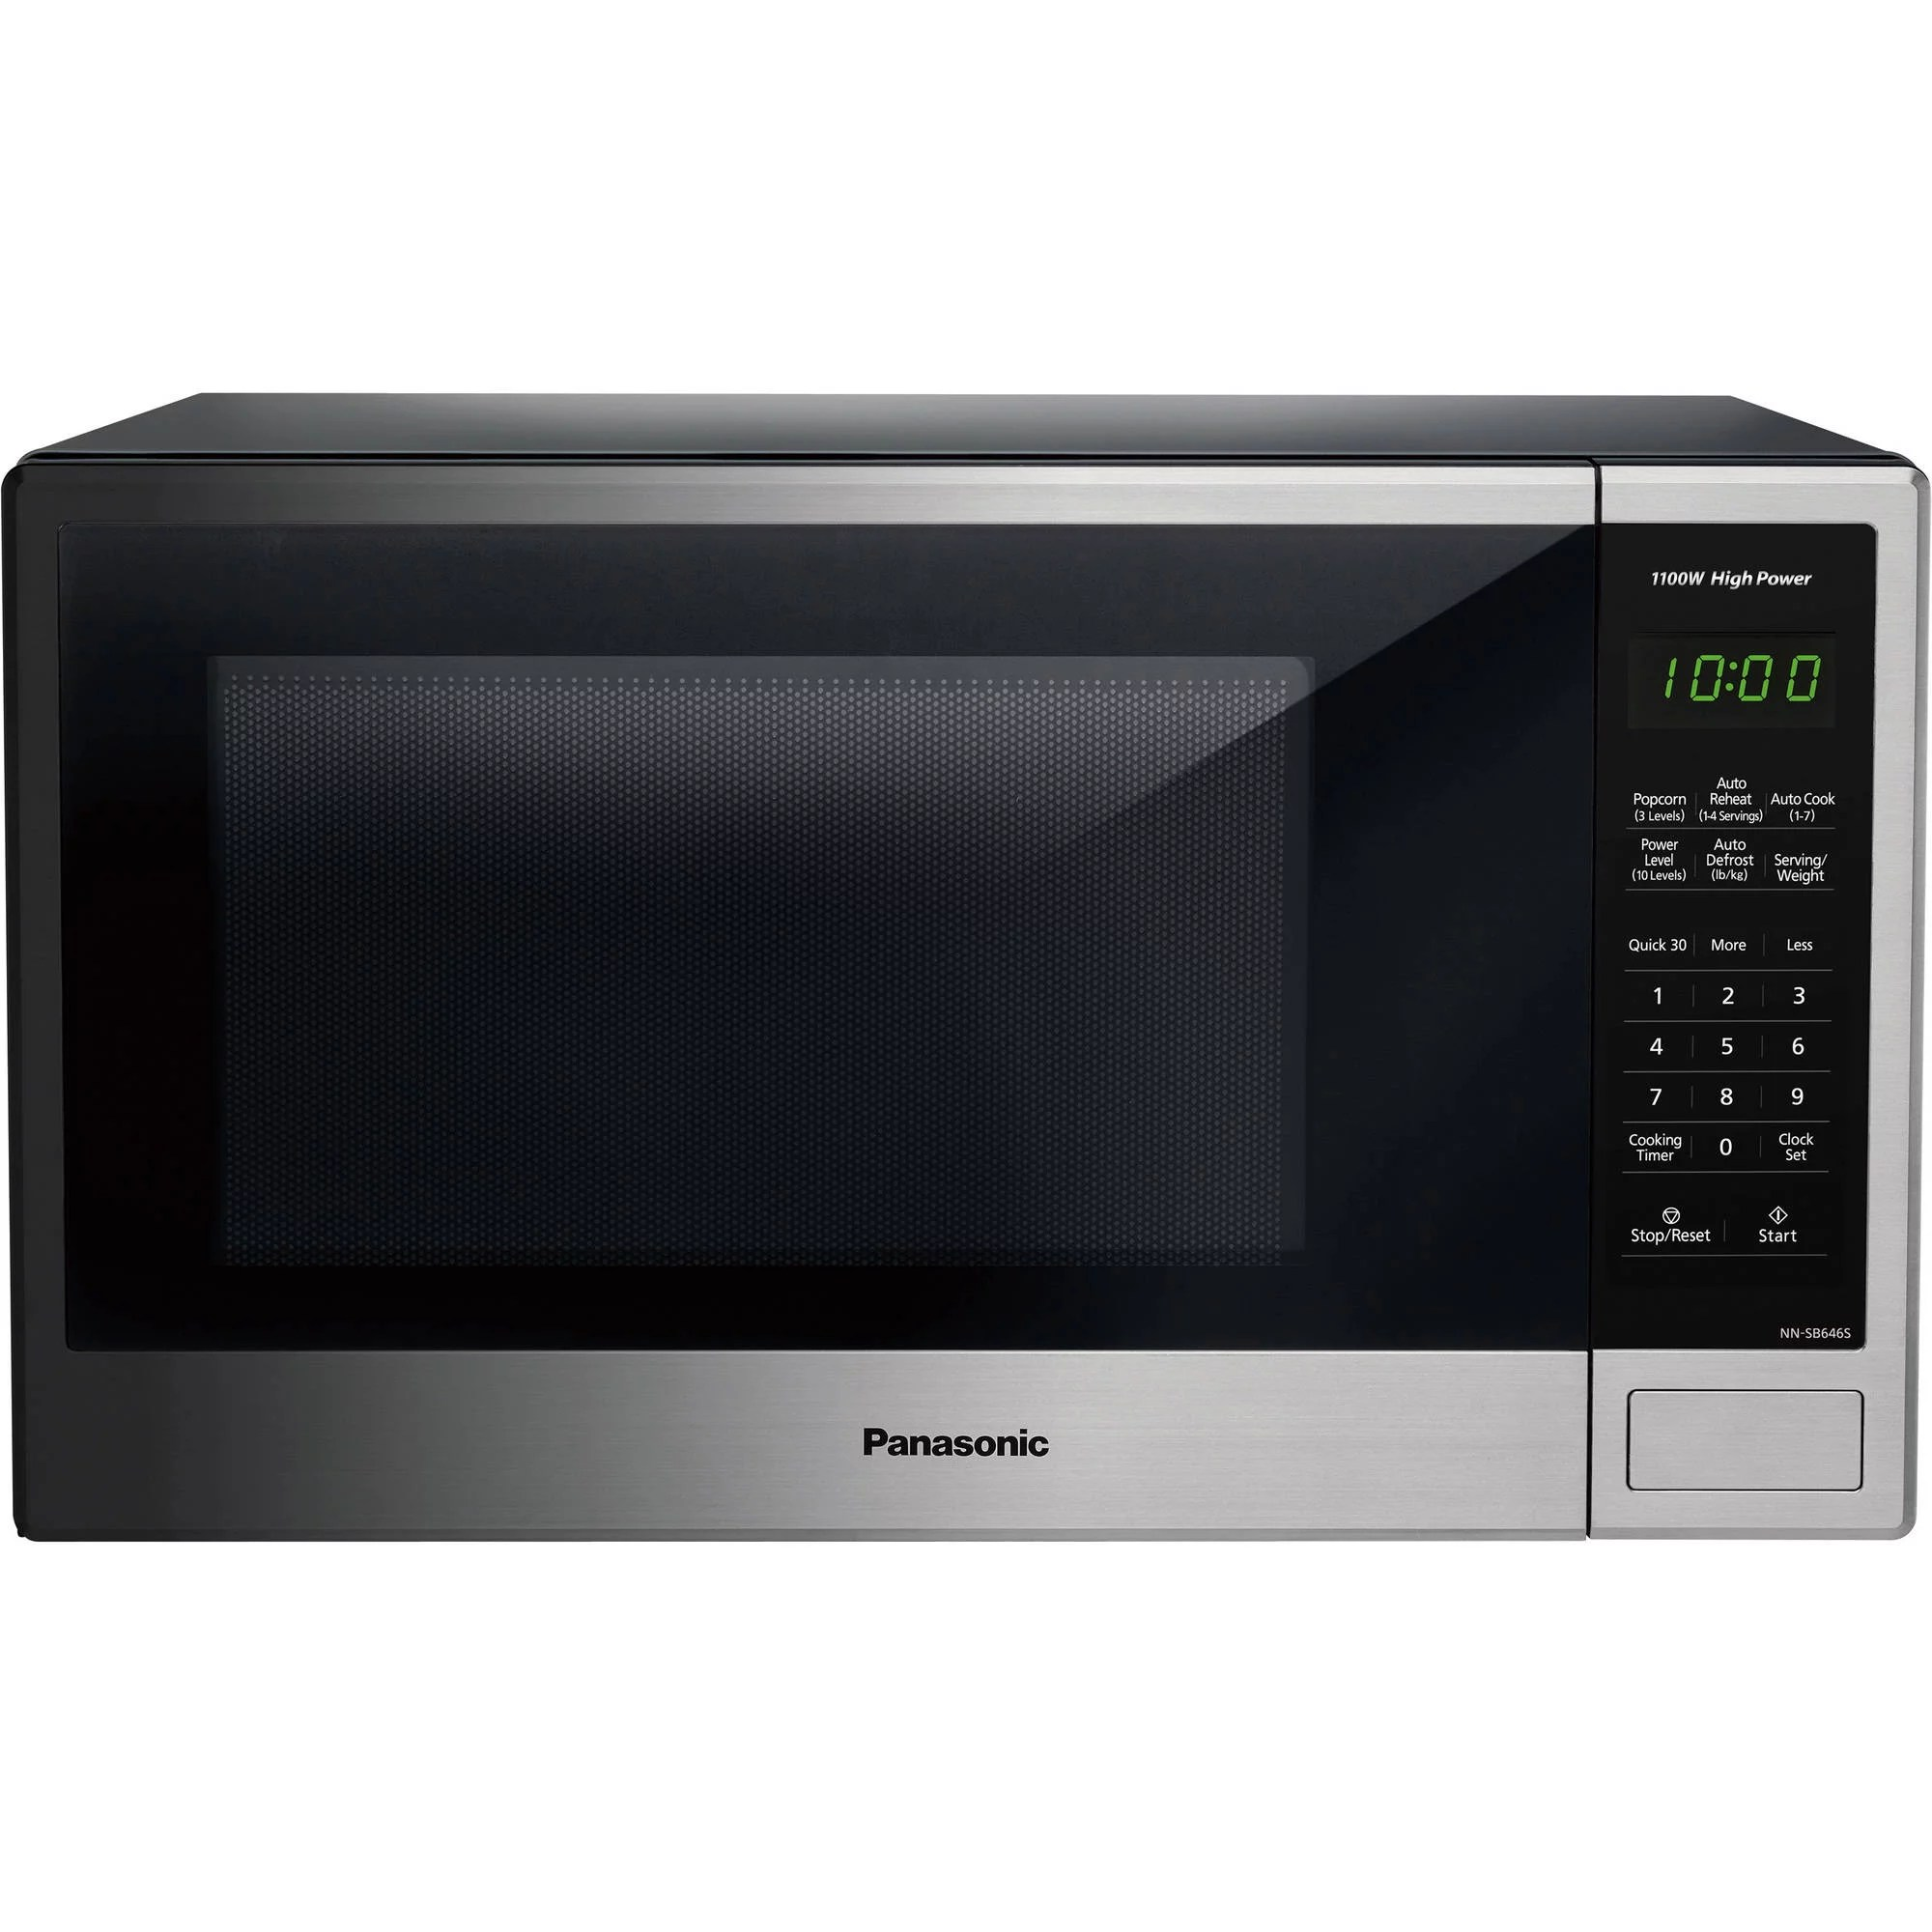 Big W Microwaves Panasonic 1 3 Cu Ft Microwave Oven Stainless Ebay